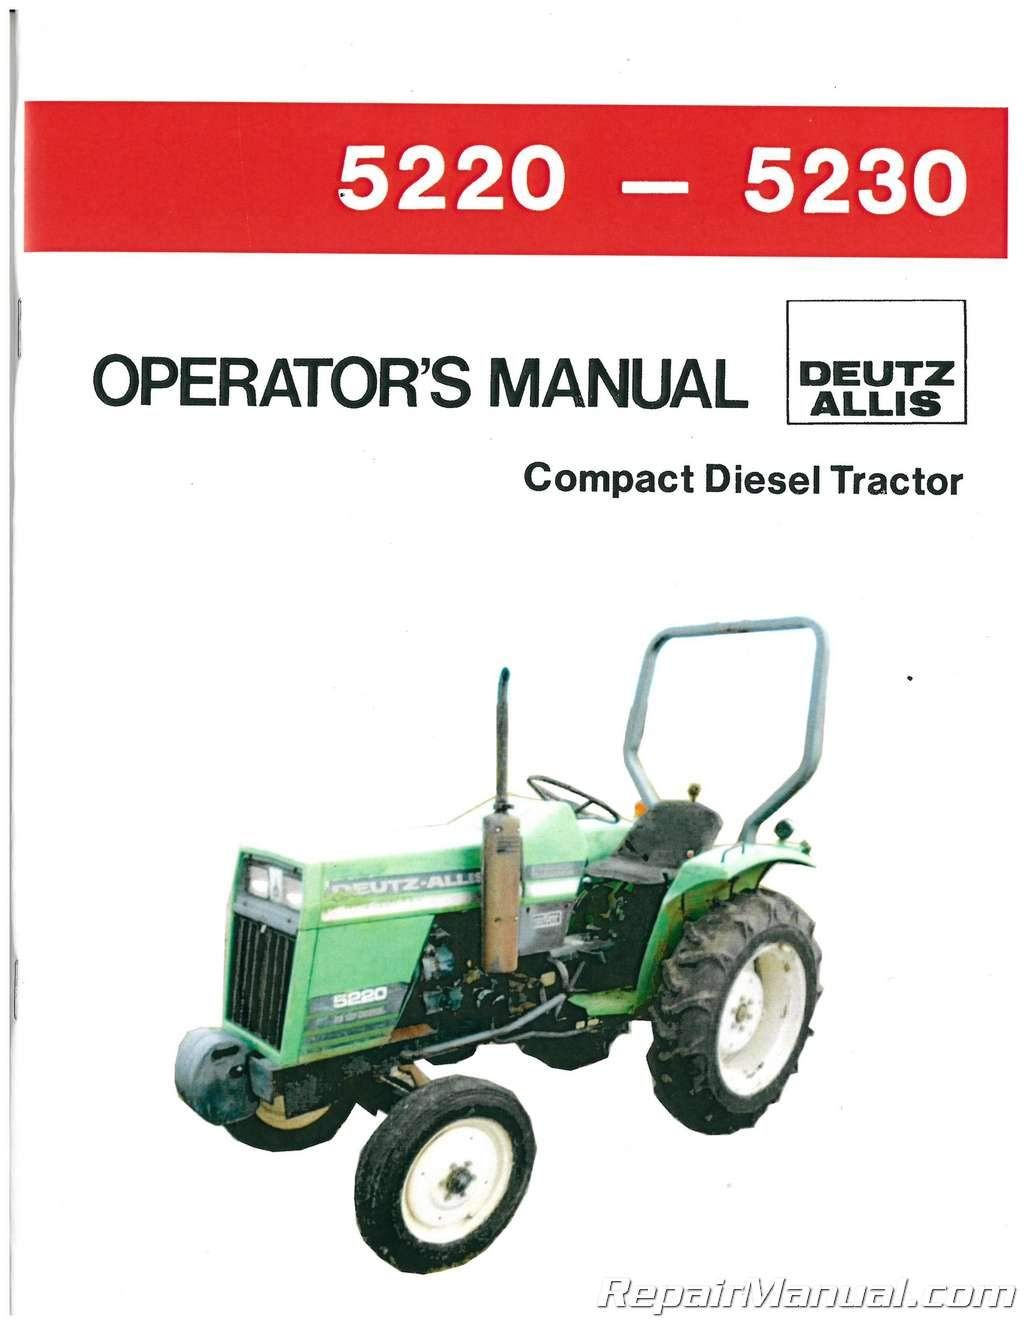 AC-S-5220-GD Deutz-Allis 5220 5230 sel 2 and 4WD Synchro Lawn ... on